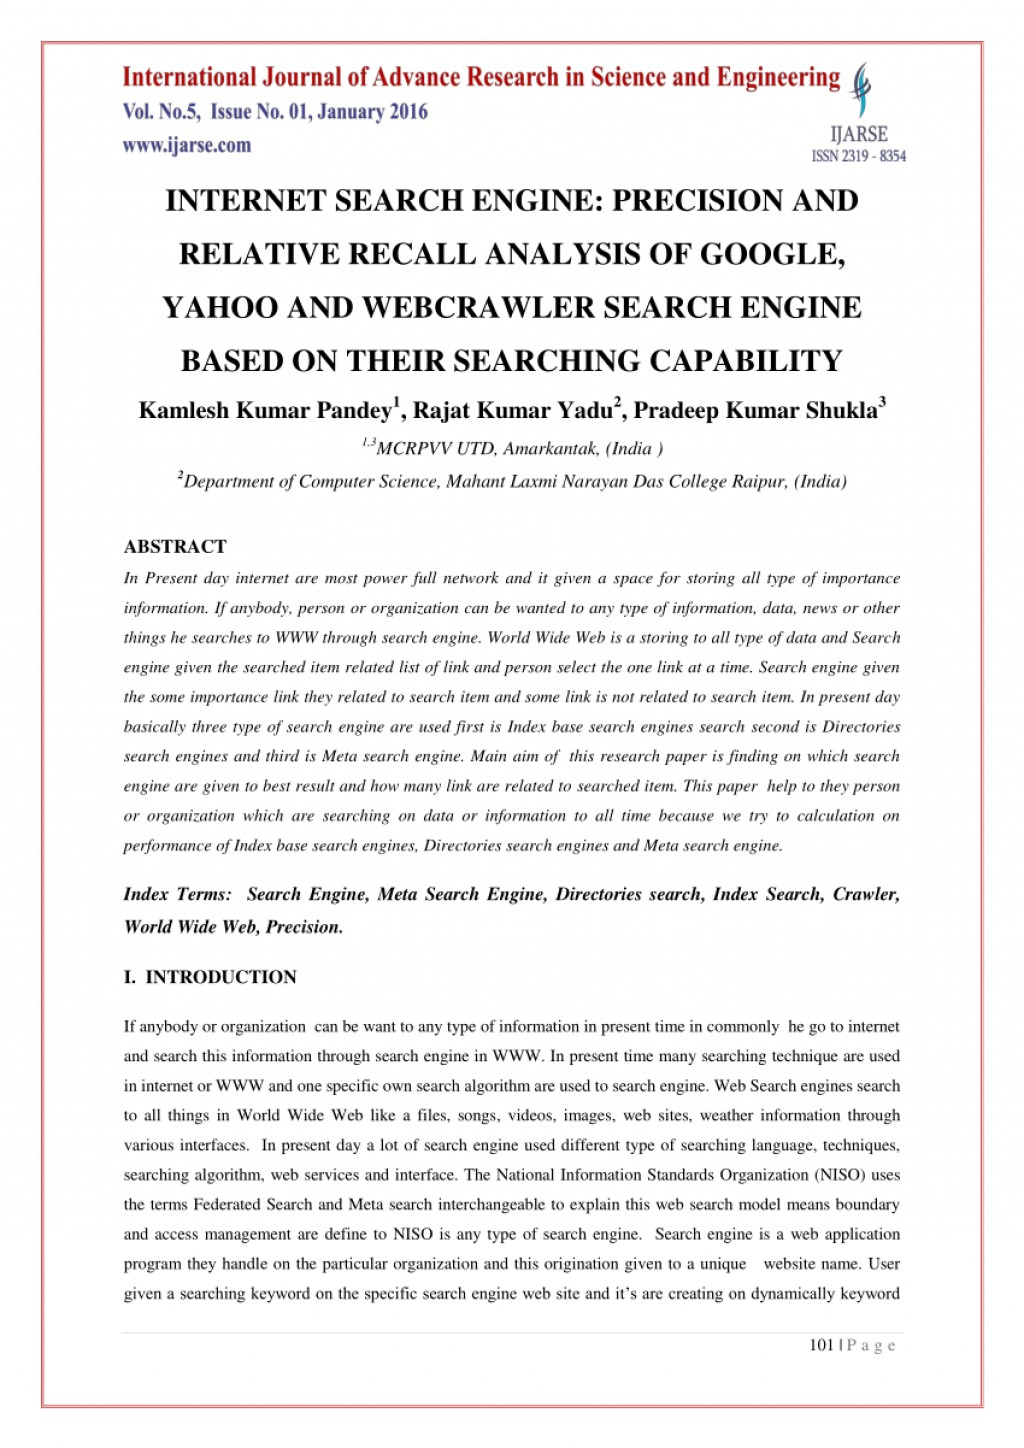 009 Research Paper Meta Search Engine Formidable Large